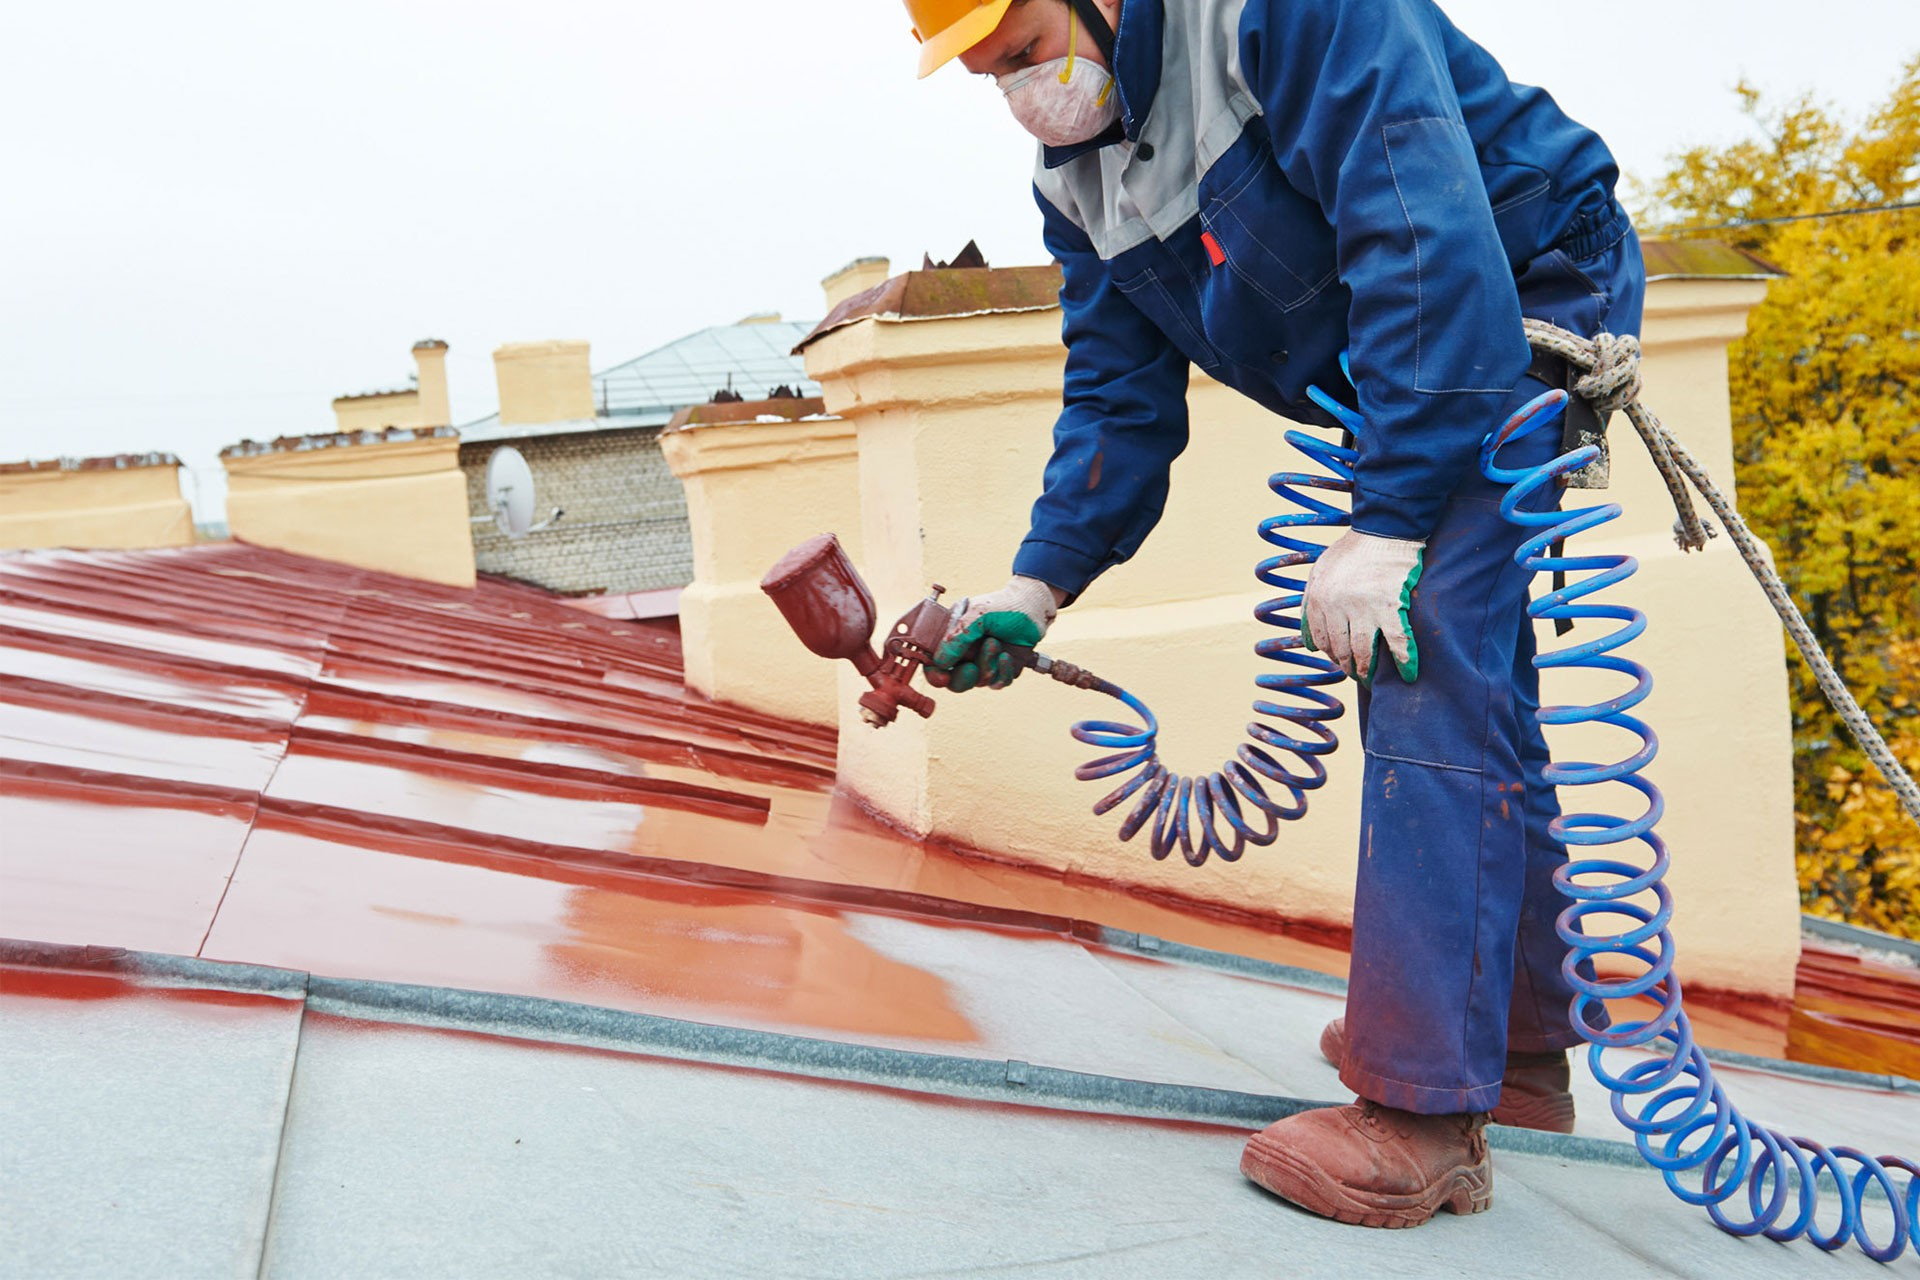 Holiday-Wichita Falls TX Professional Painting Contractors-We offer Residential & Commercial Painting, Interior Painting, Exterior Painting, Primer Painting, Industrial Painting, Professional Painters, Institutional Painters, and more.